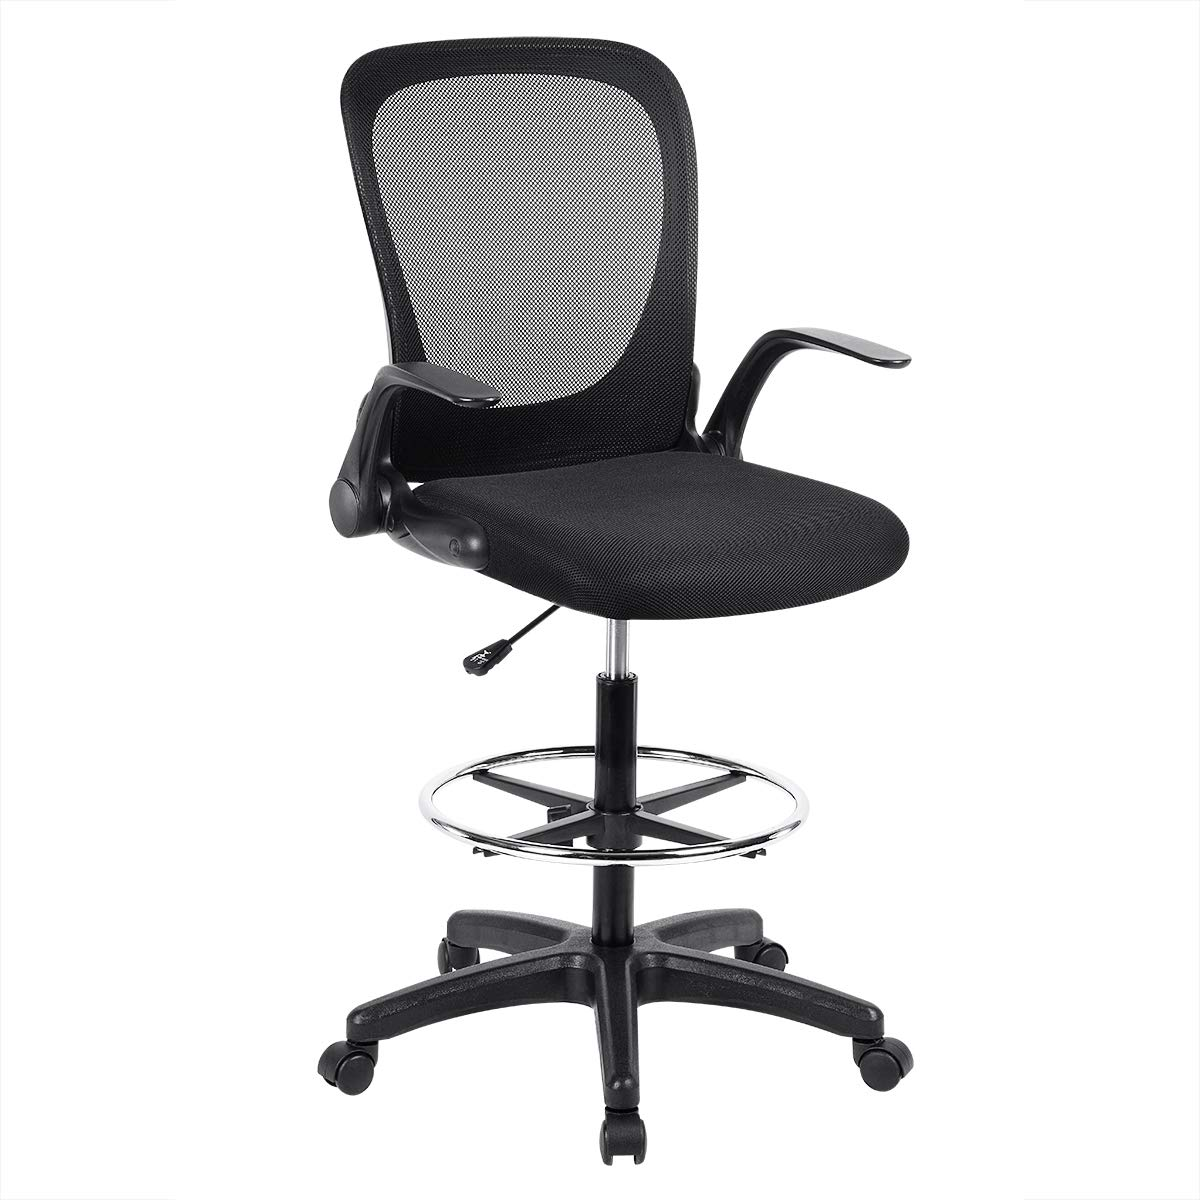 Ulikit Black Mesh Drafting Chair ,Tall Office Chair Drafting Stool With Adjustable Foot Rest